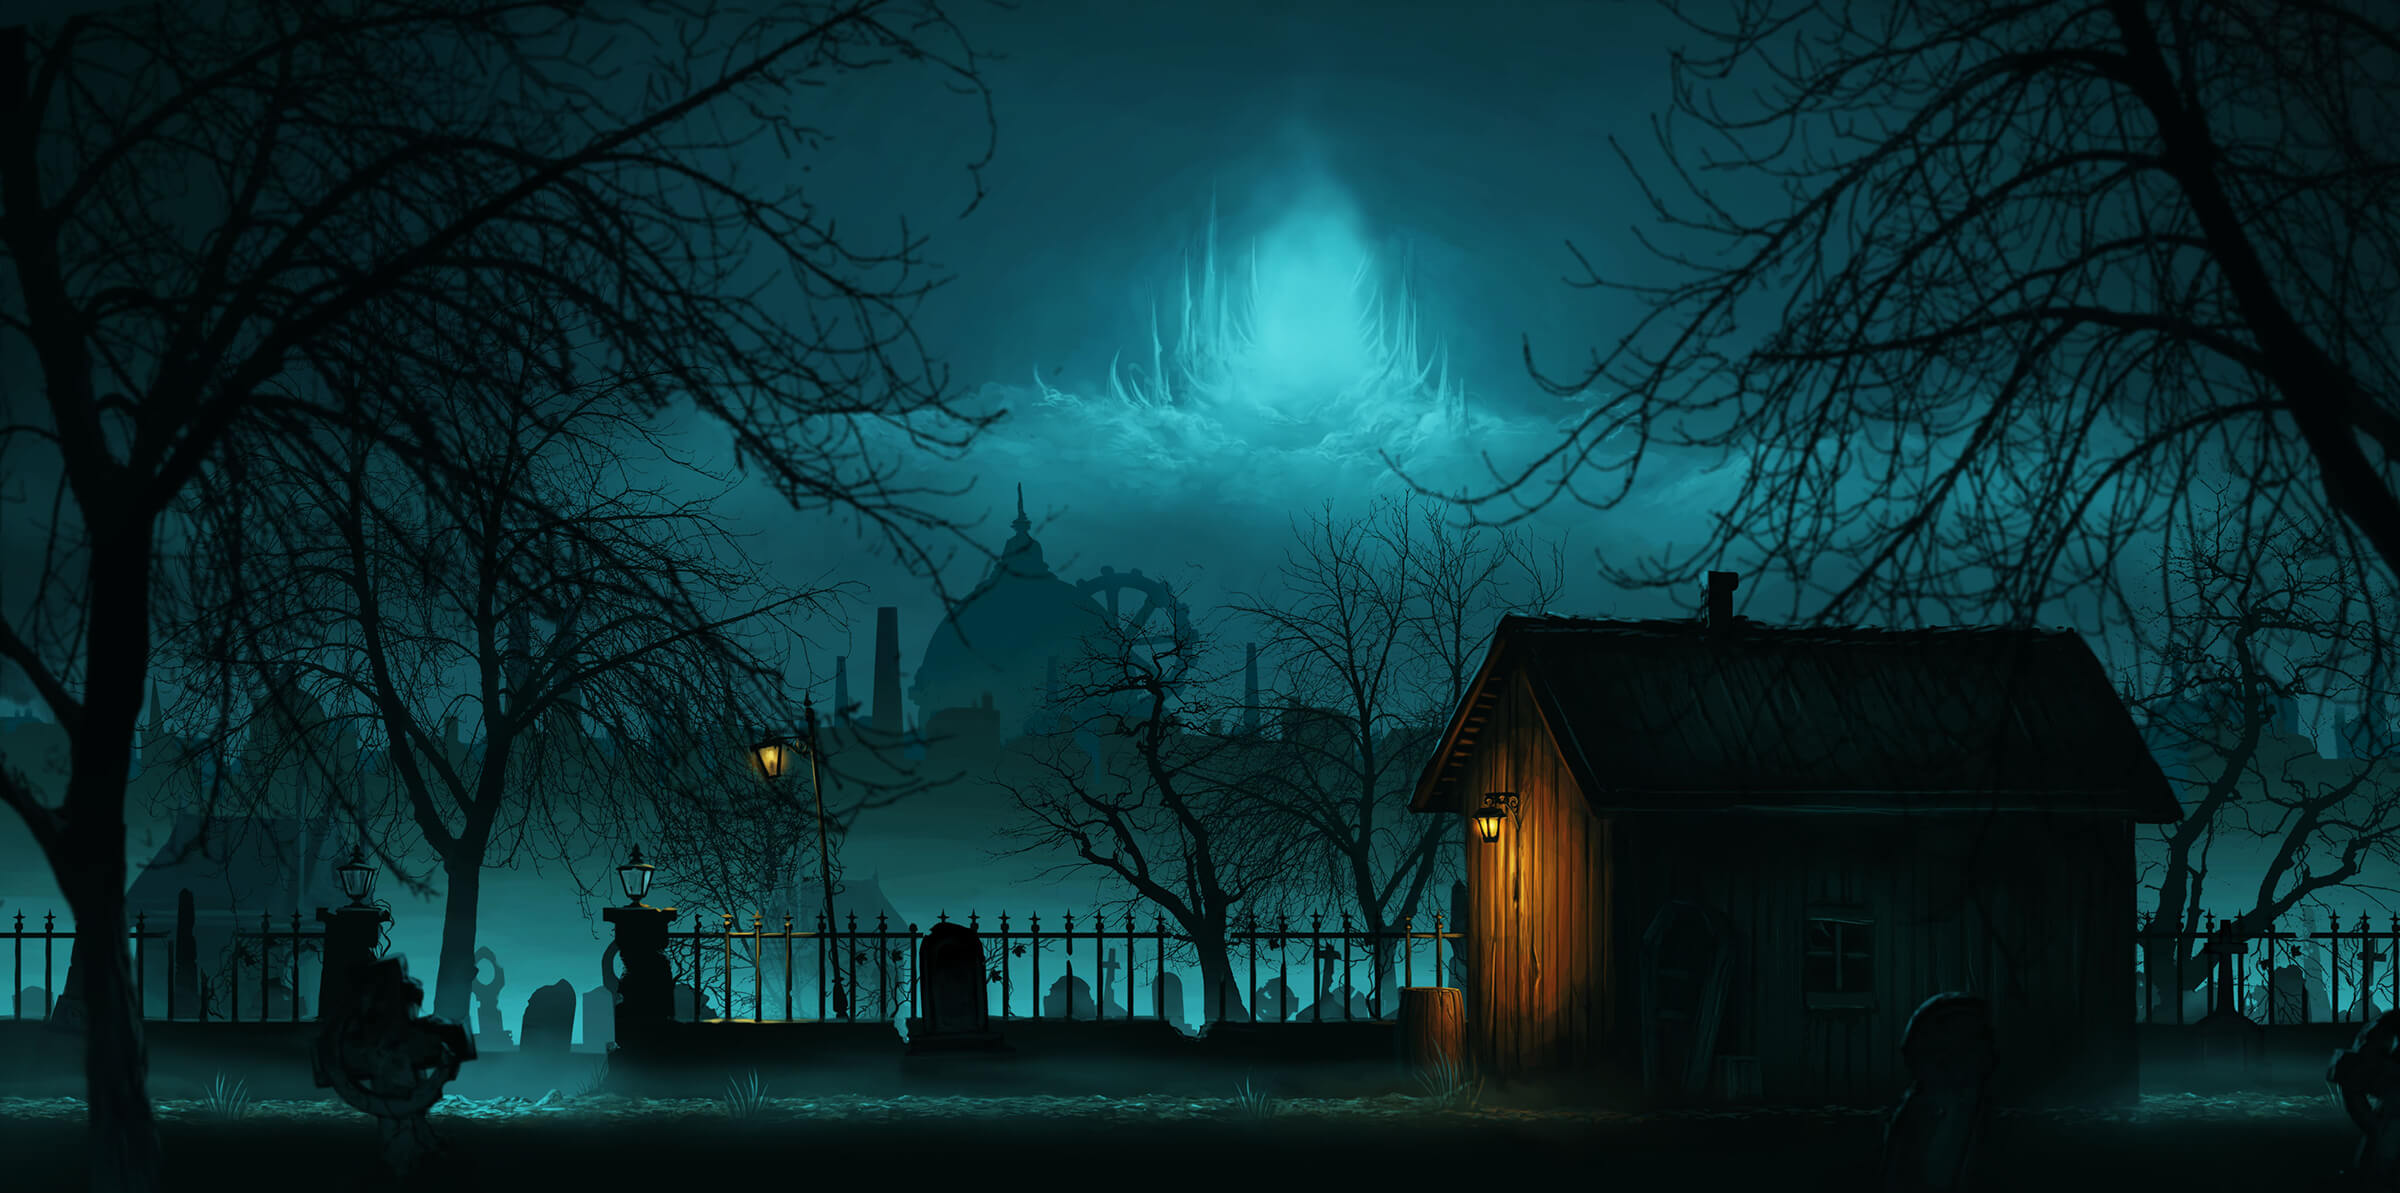 A wooden shack stands in a graveyard at night. The cityscape and sky in the distance are lit with ethereal blue light.